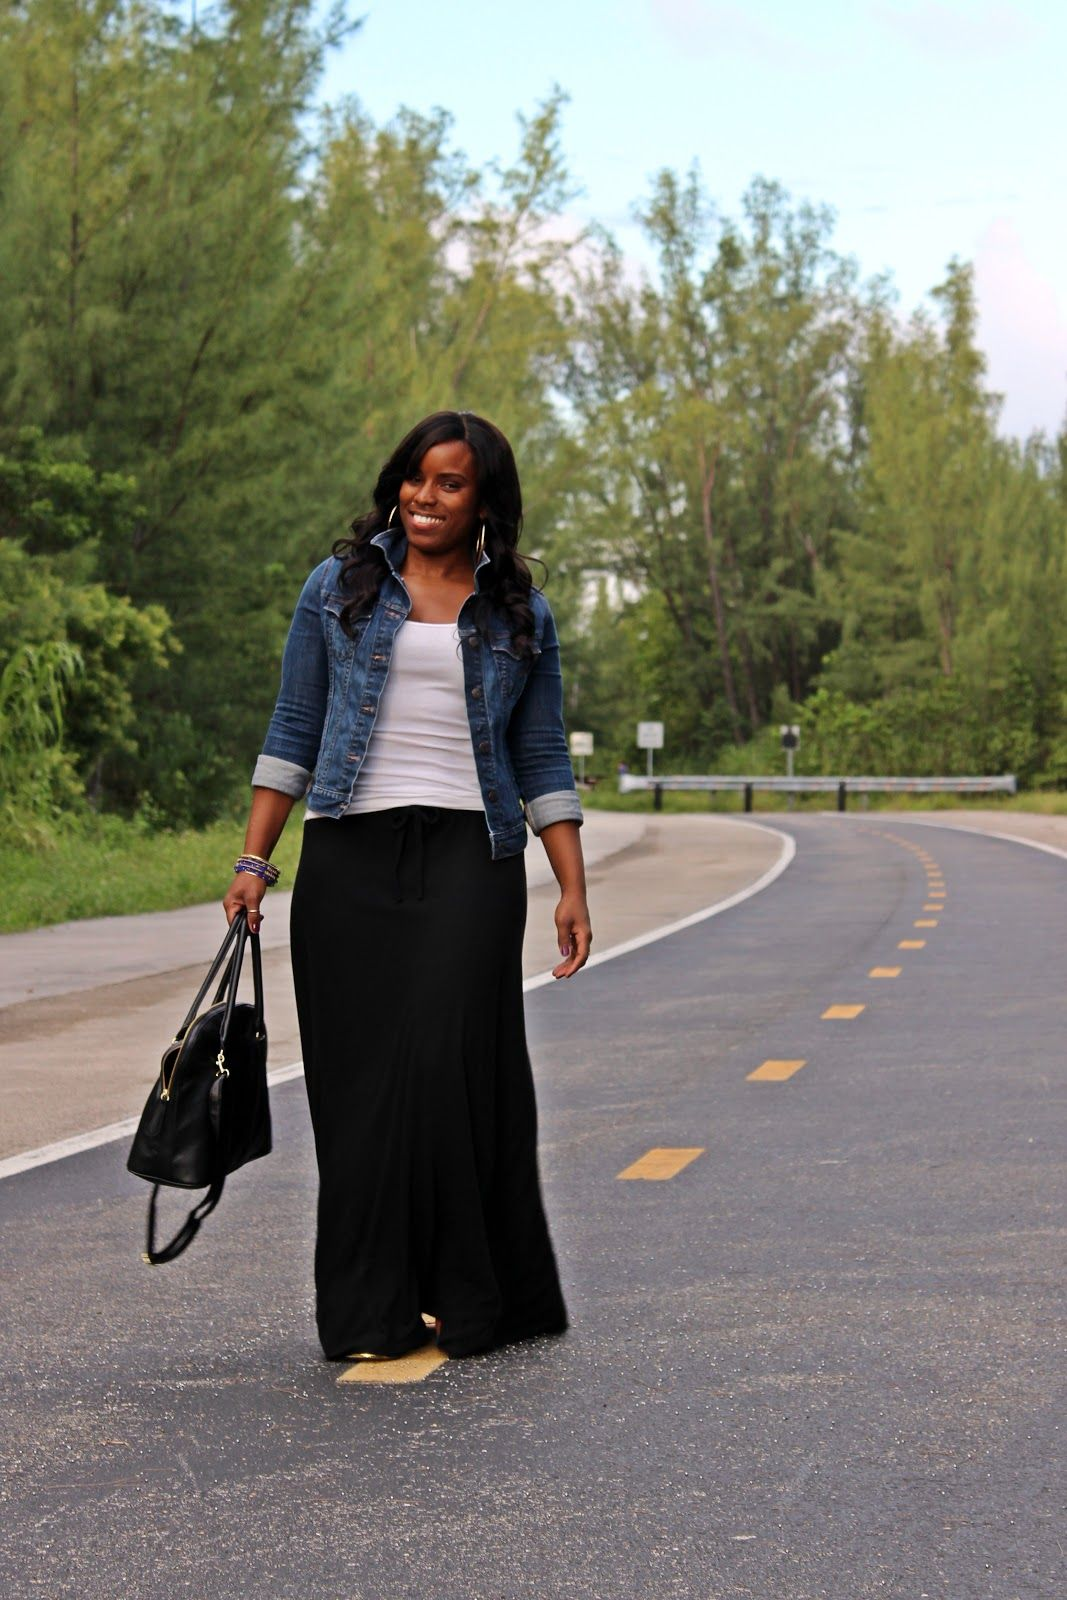 17 best images about Maxi on Pinterest | Summer, Maxi skirts and ...